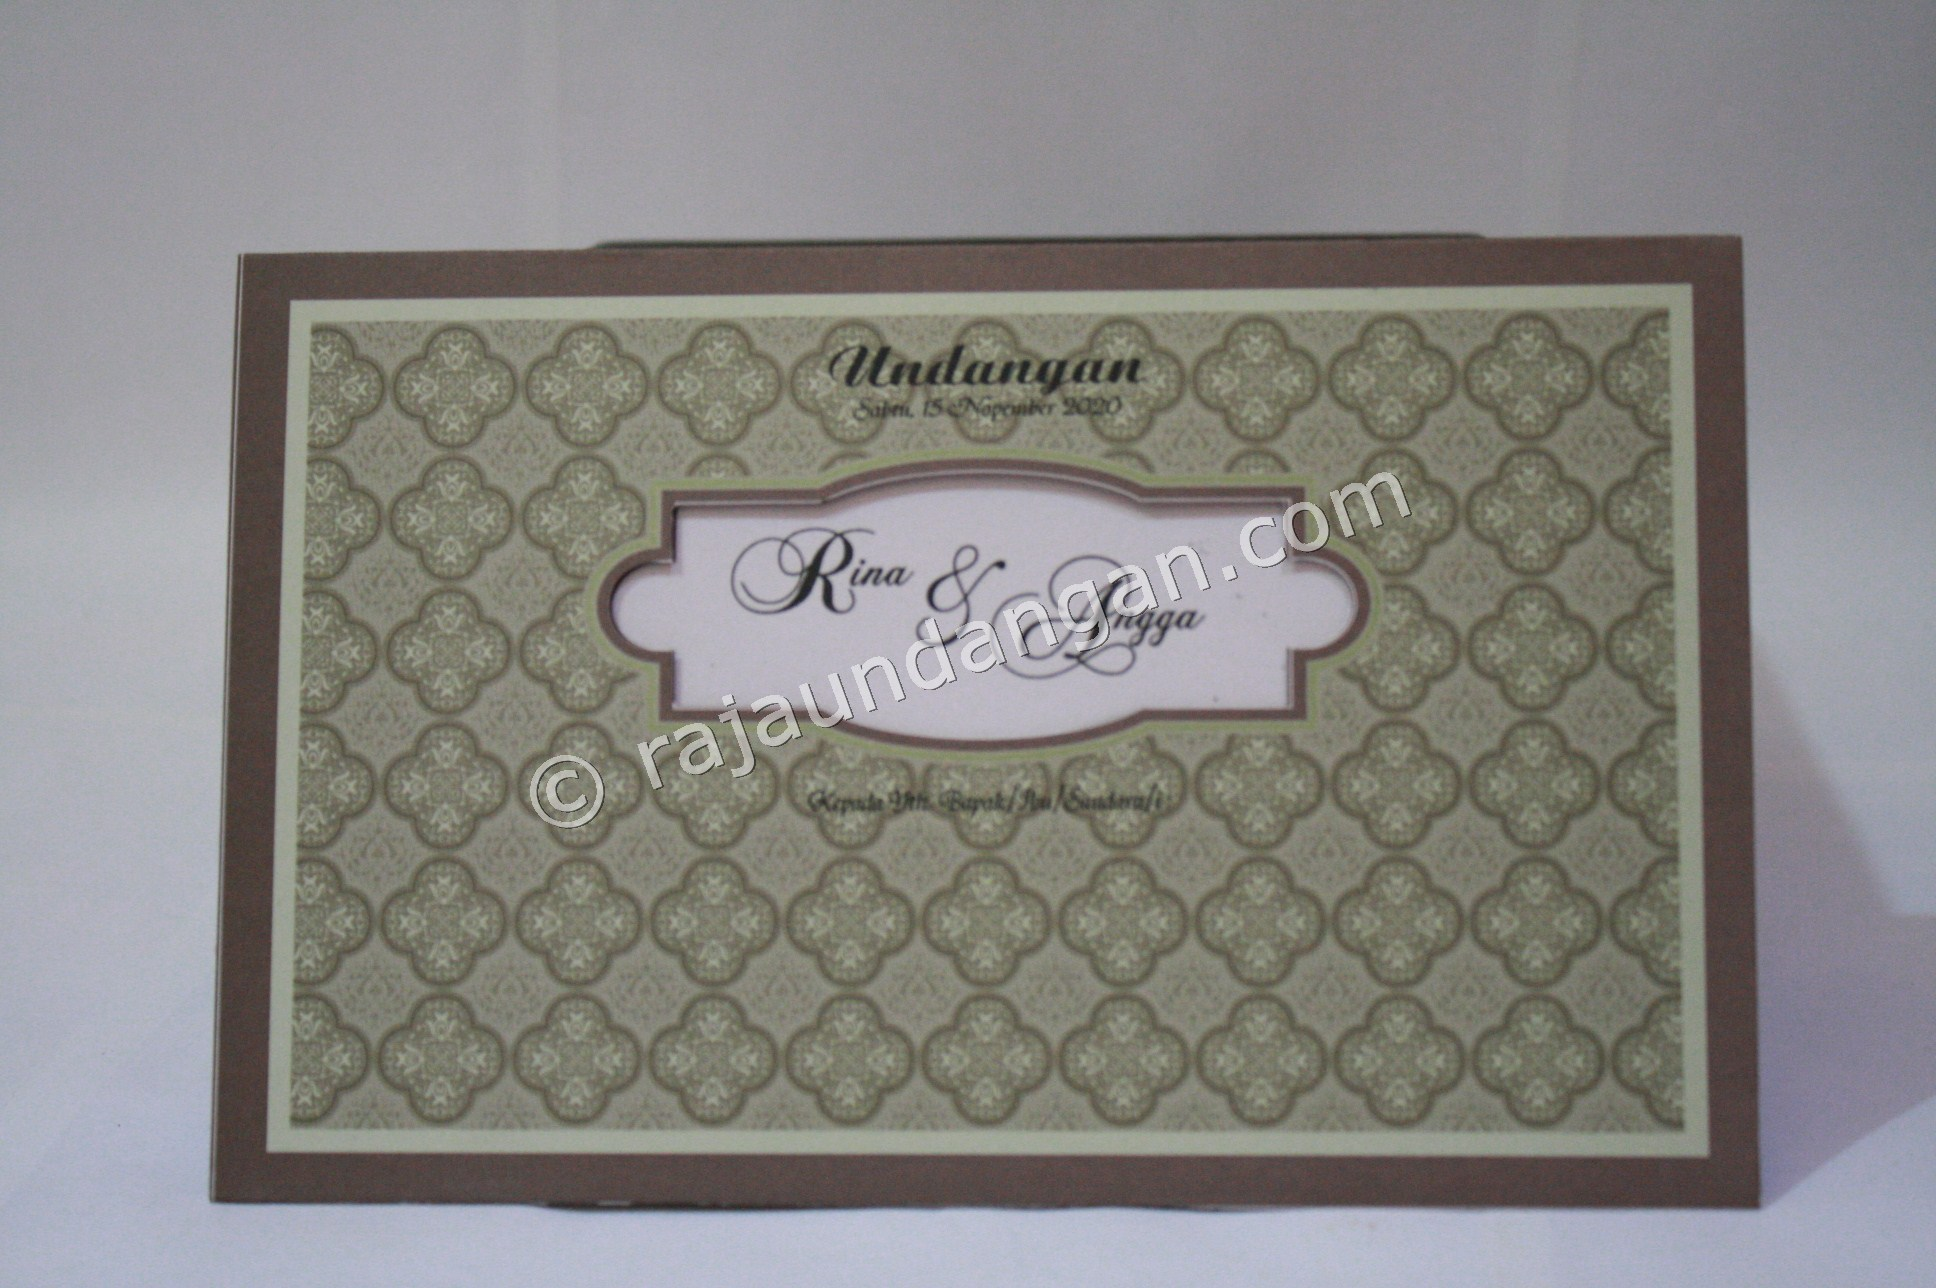 Undangan Pernikahan Softcover Lia dan Doni 1 - Pesan Wedding Invitations Simple di Ploso